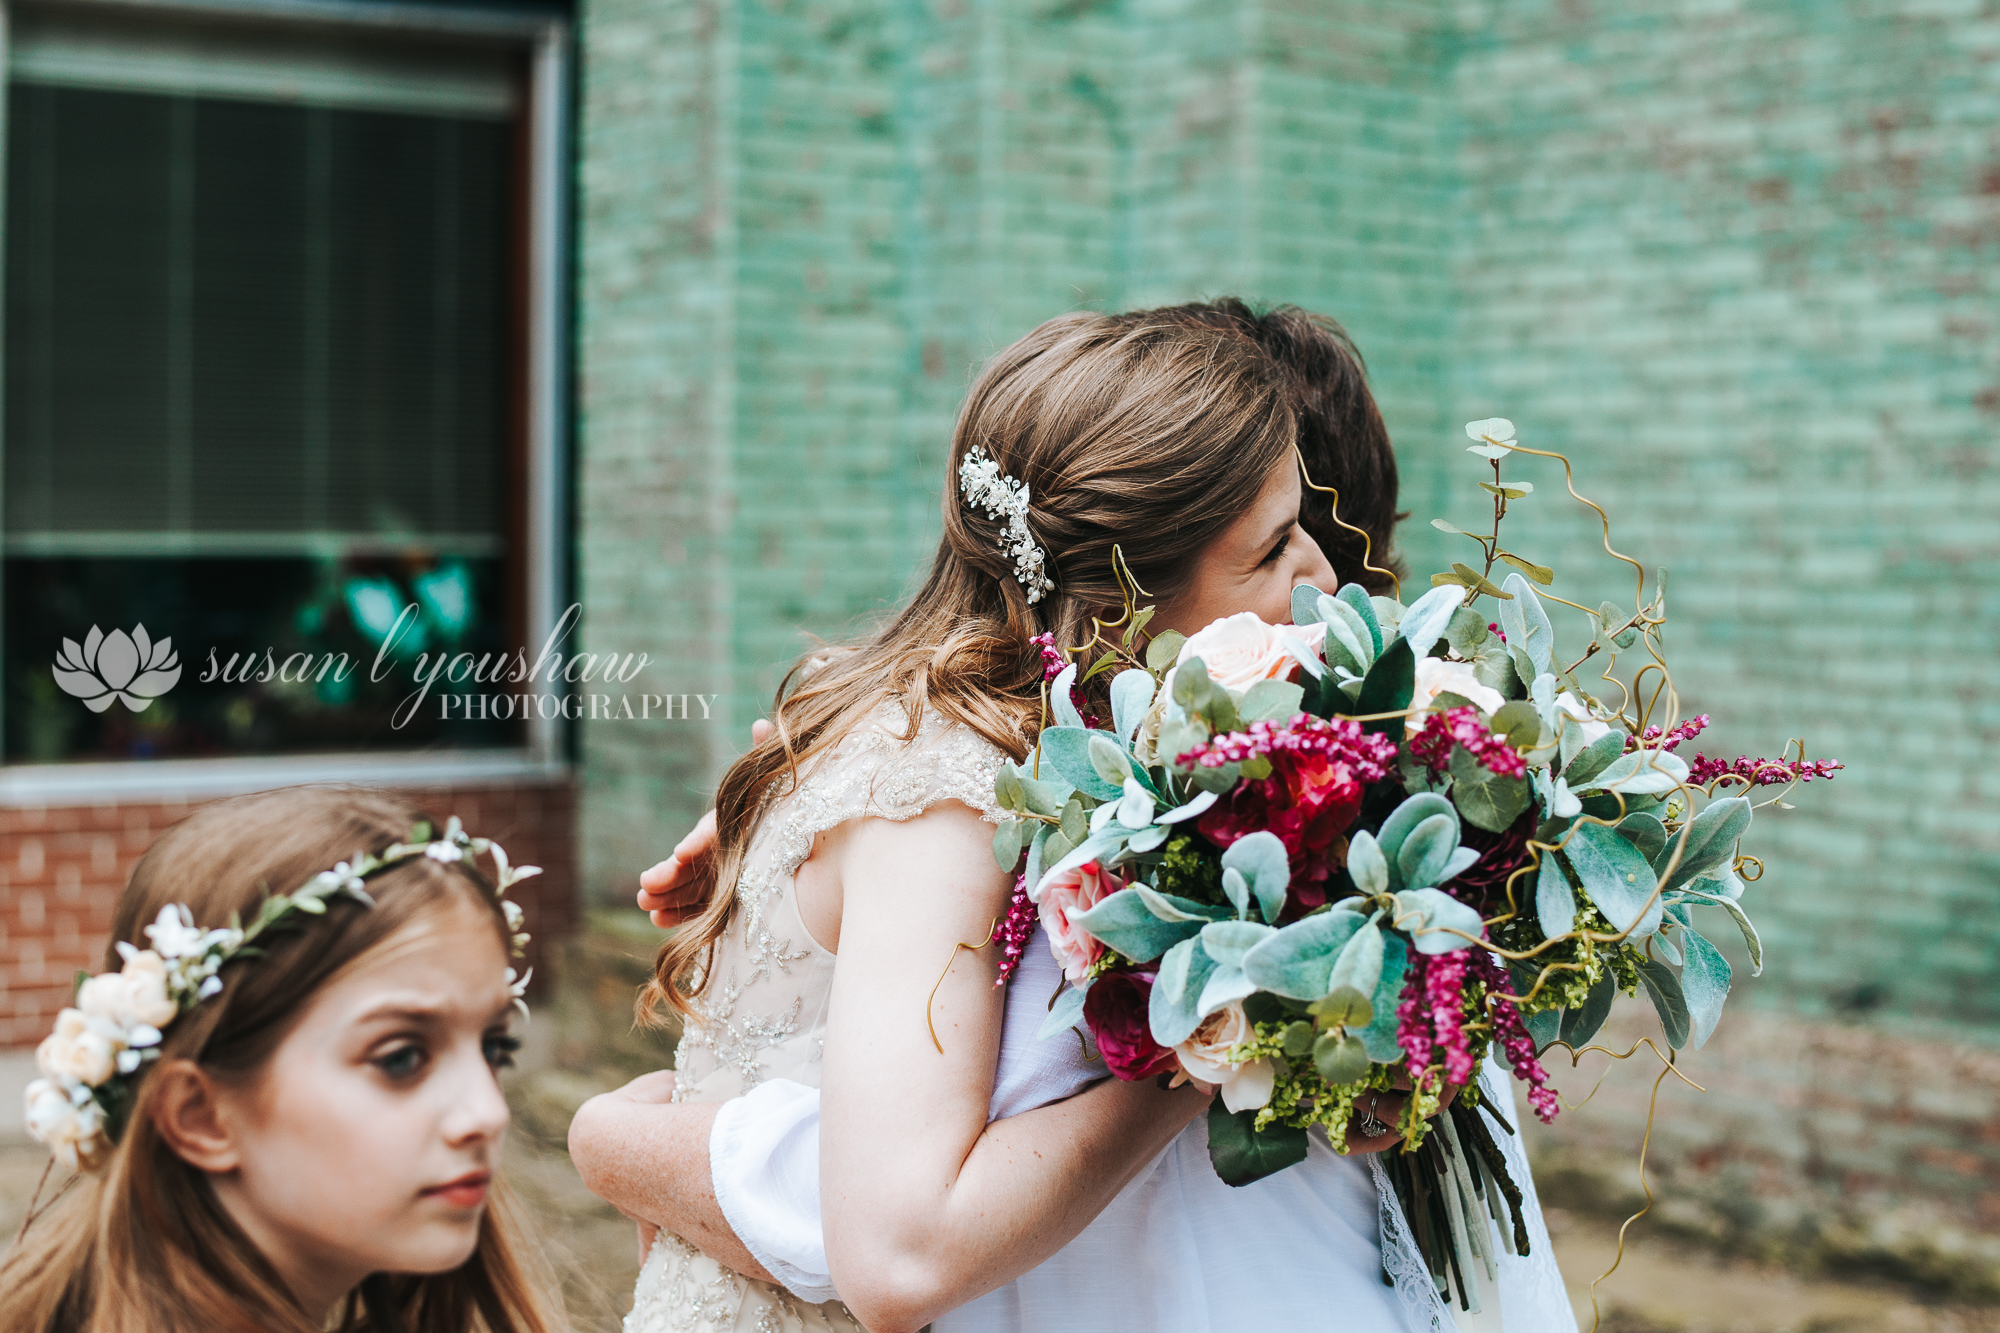 Chynna and John Wedding 05-18-2019 SLY Photography-47.jpg